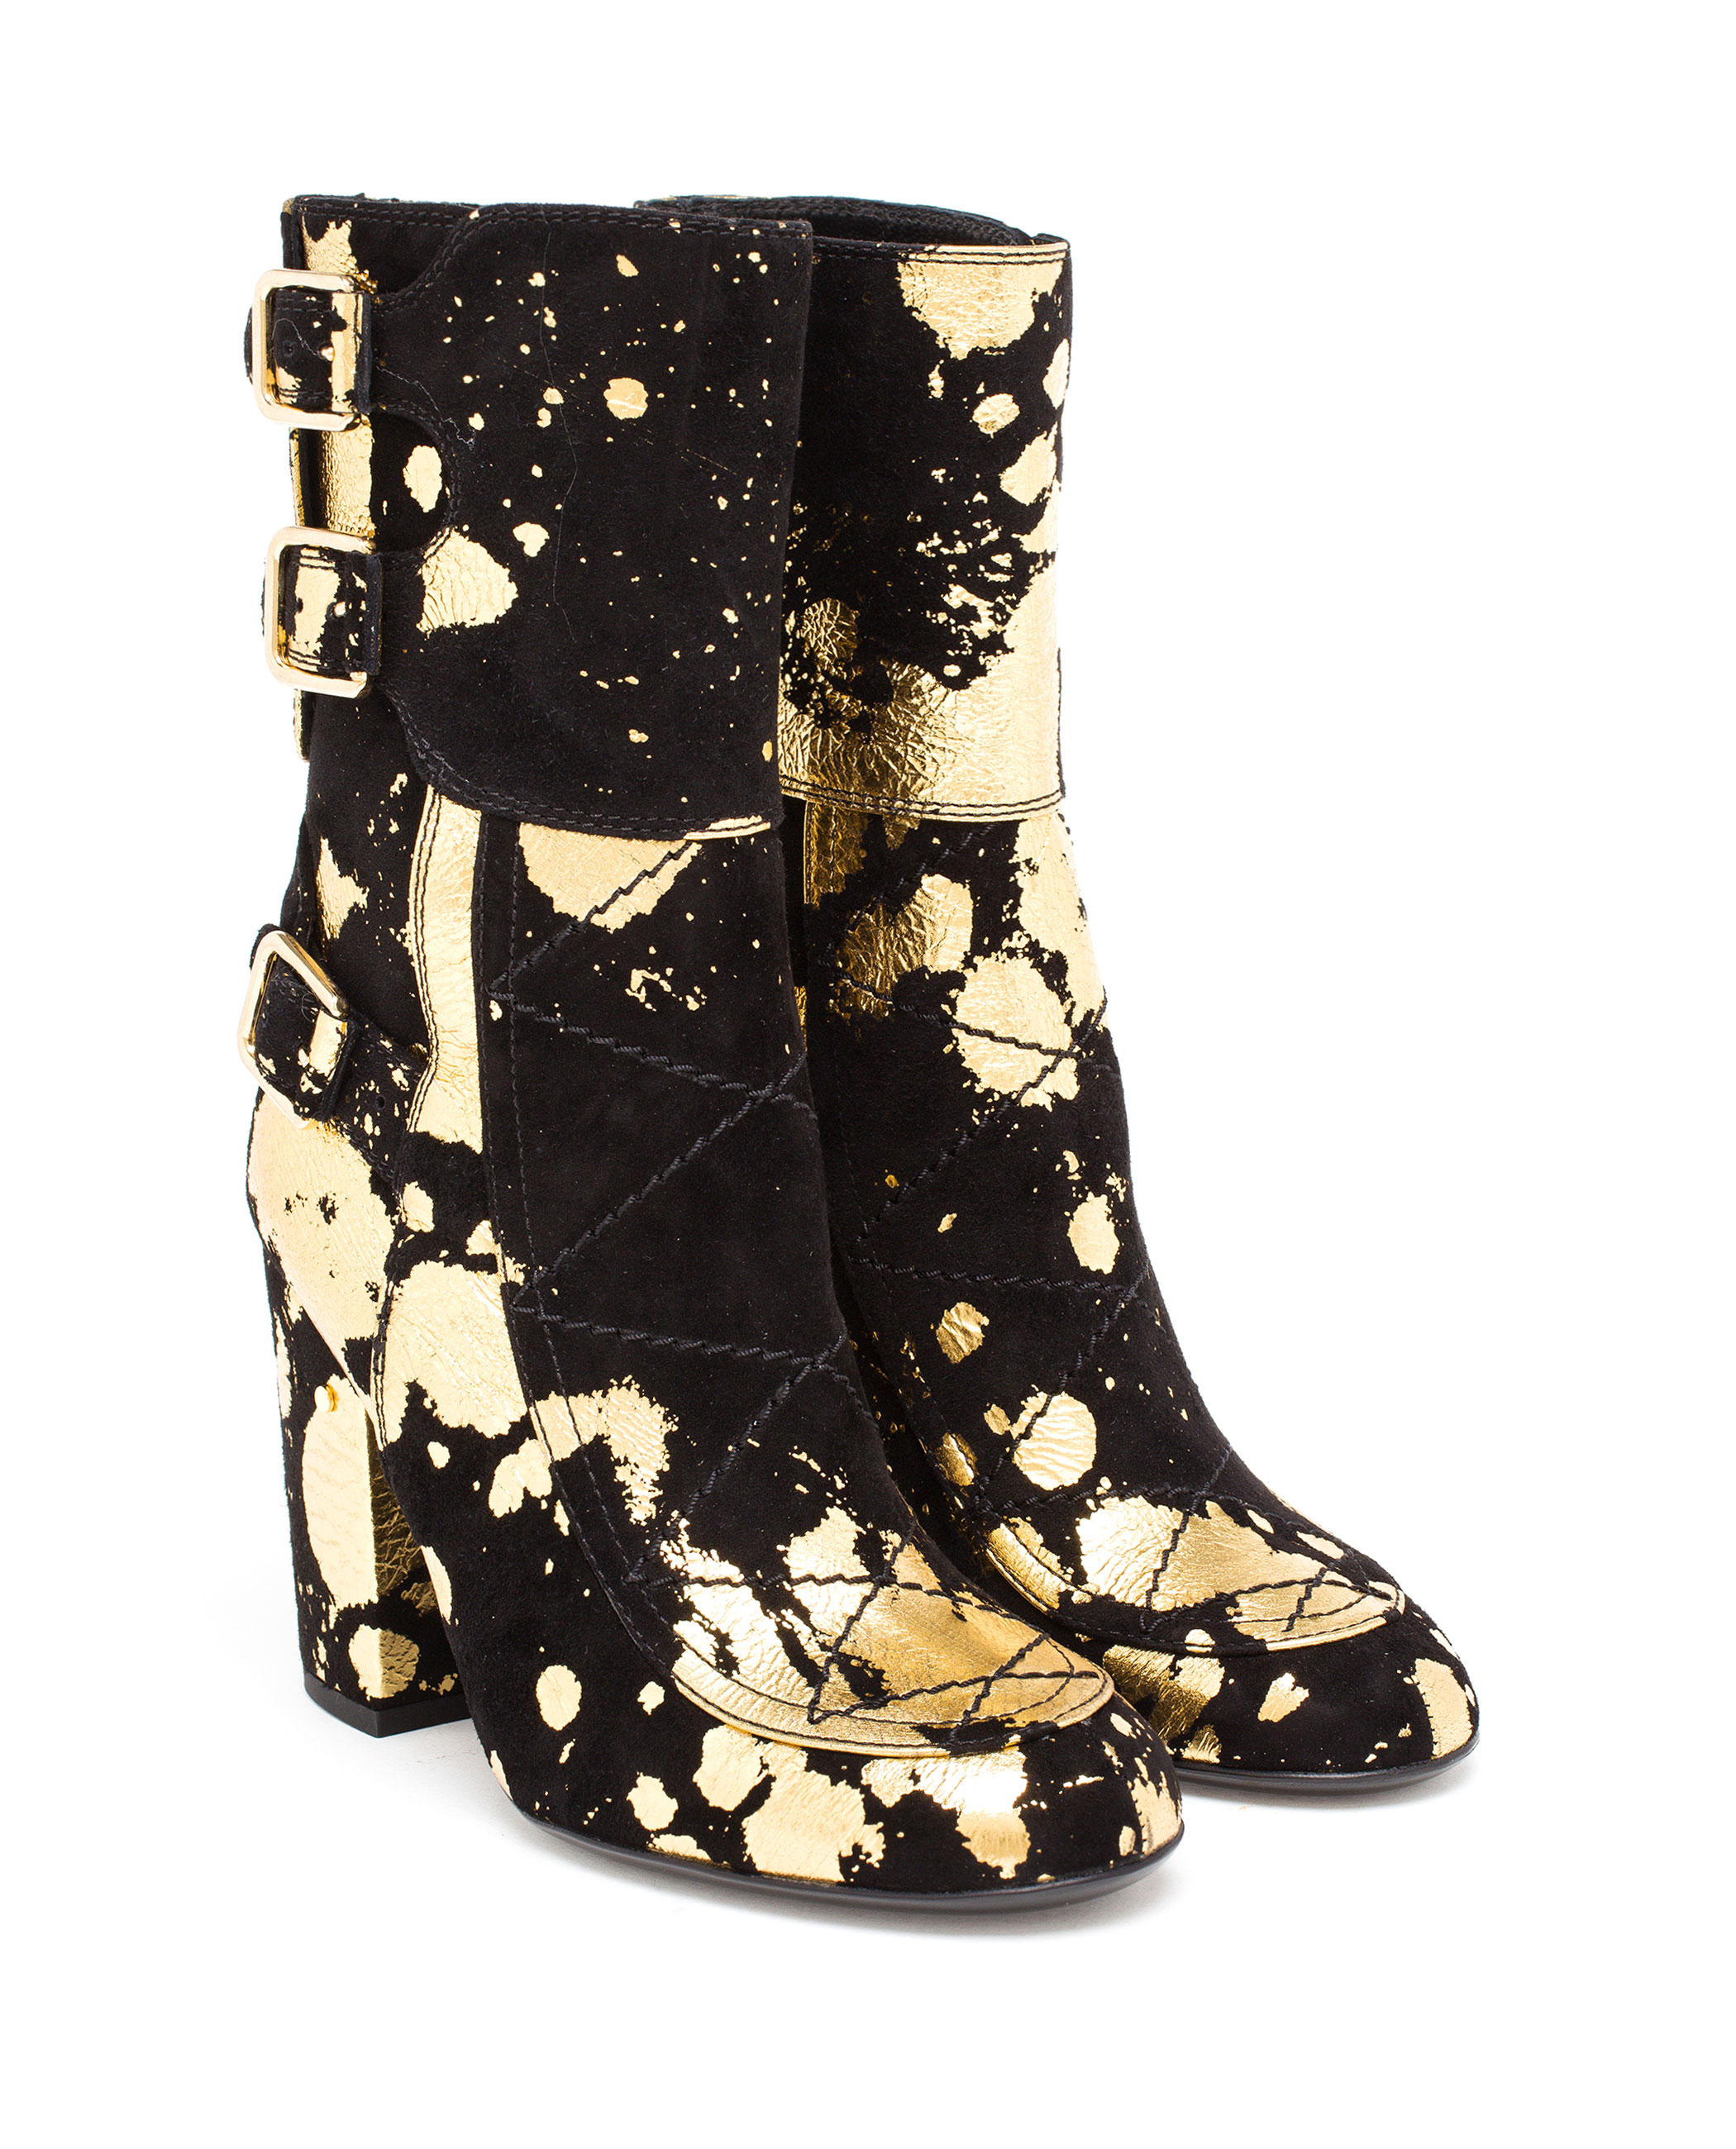 laurence dacade suede merli with gold paint spatter in